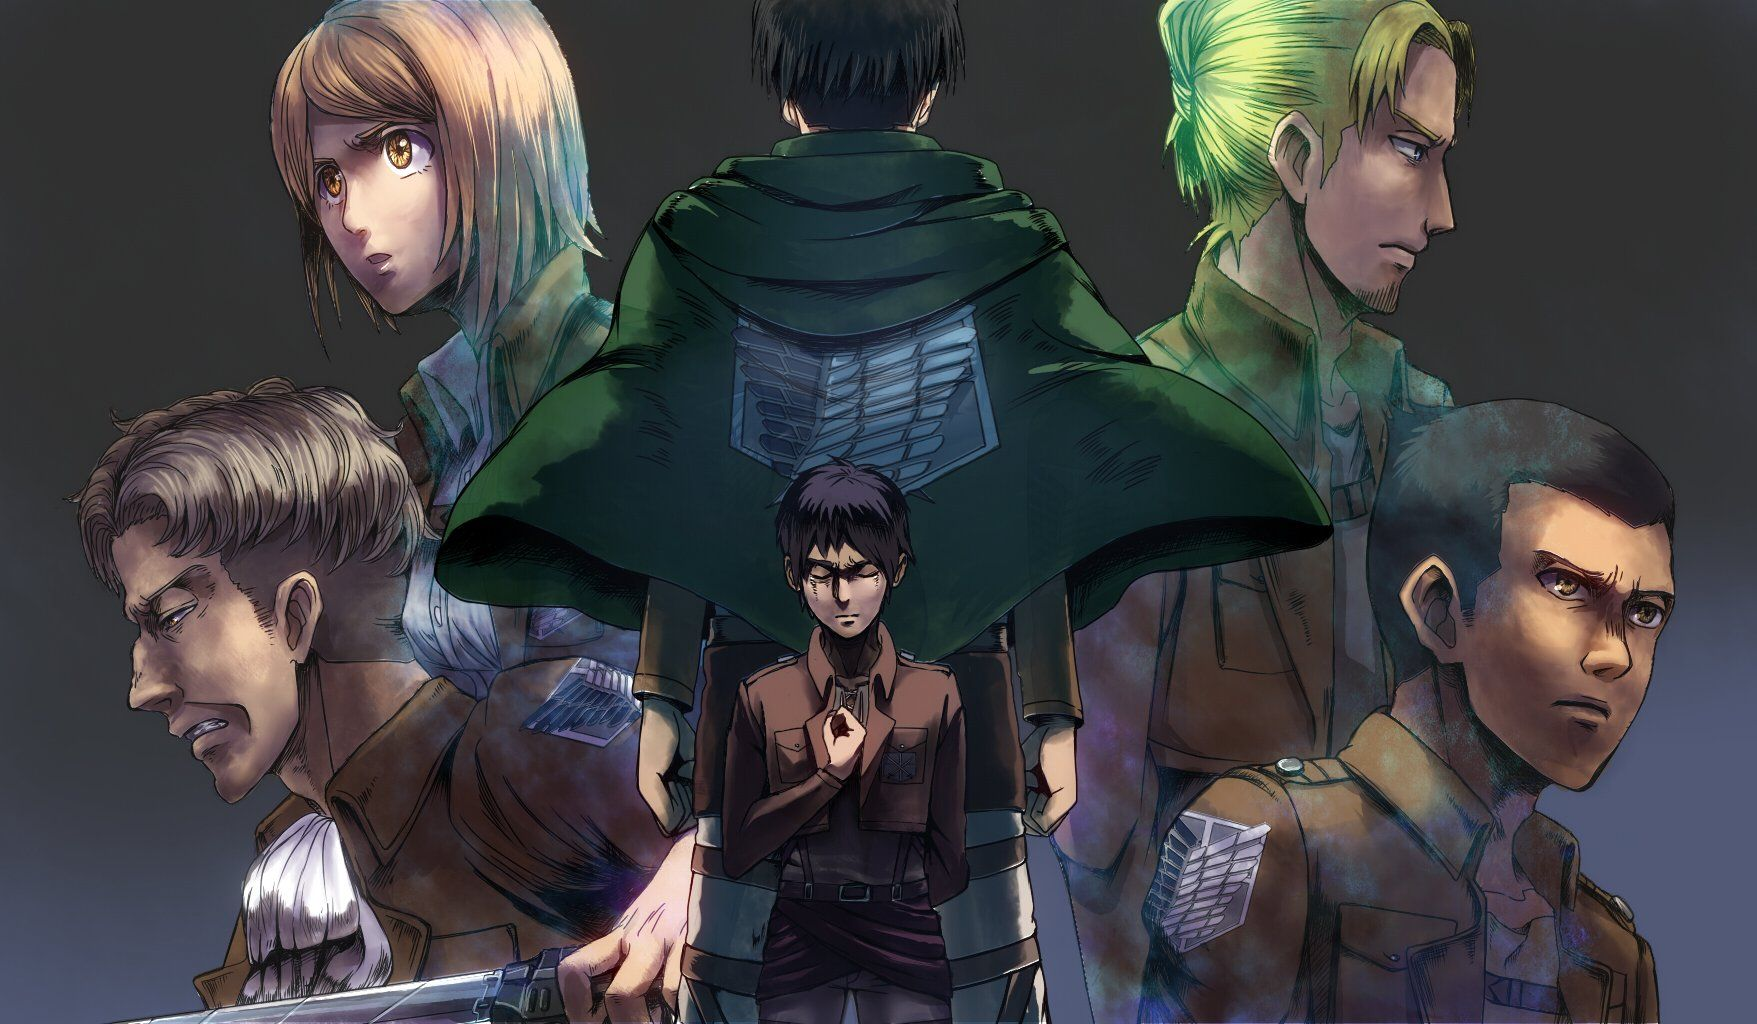 Survey Corps Wallpapers Wallpaper Cave